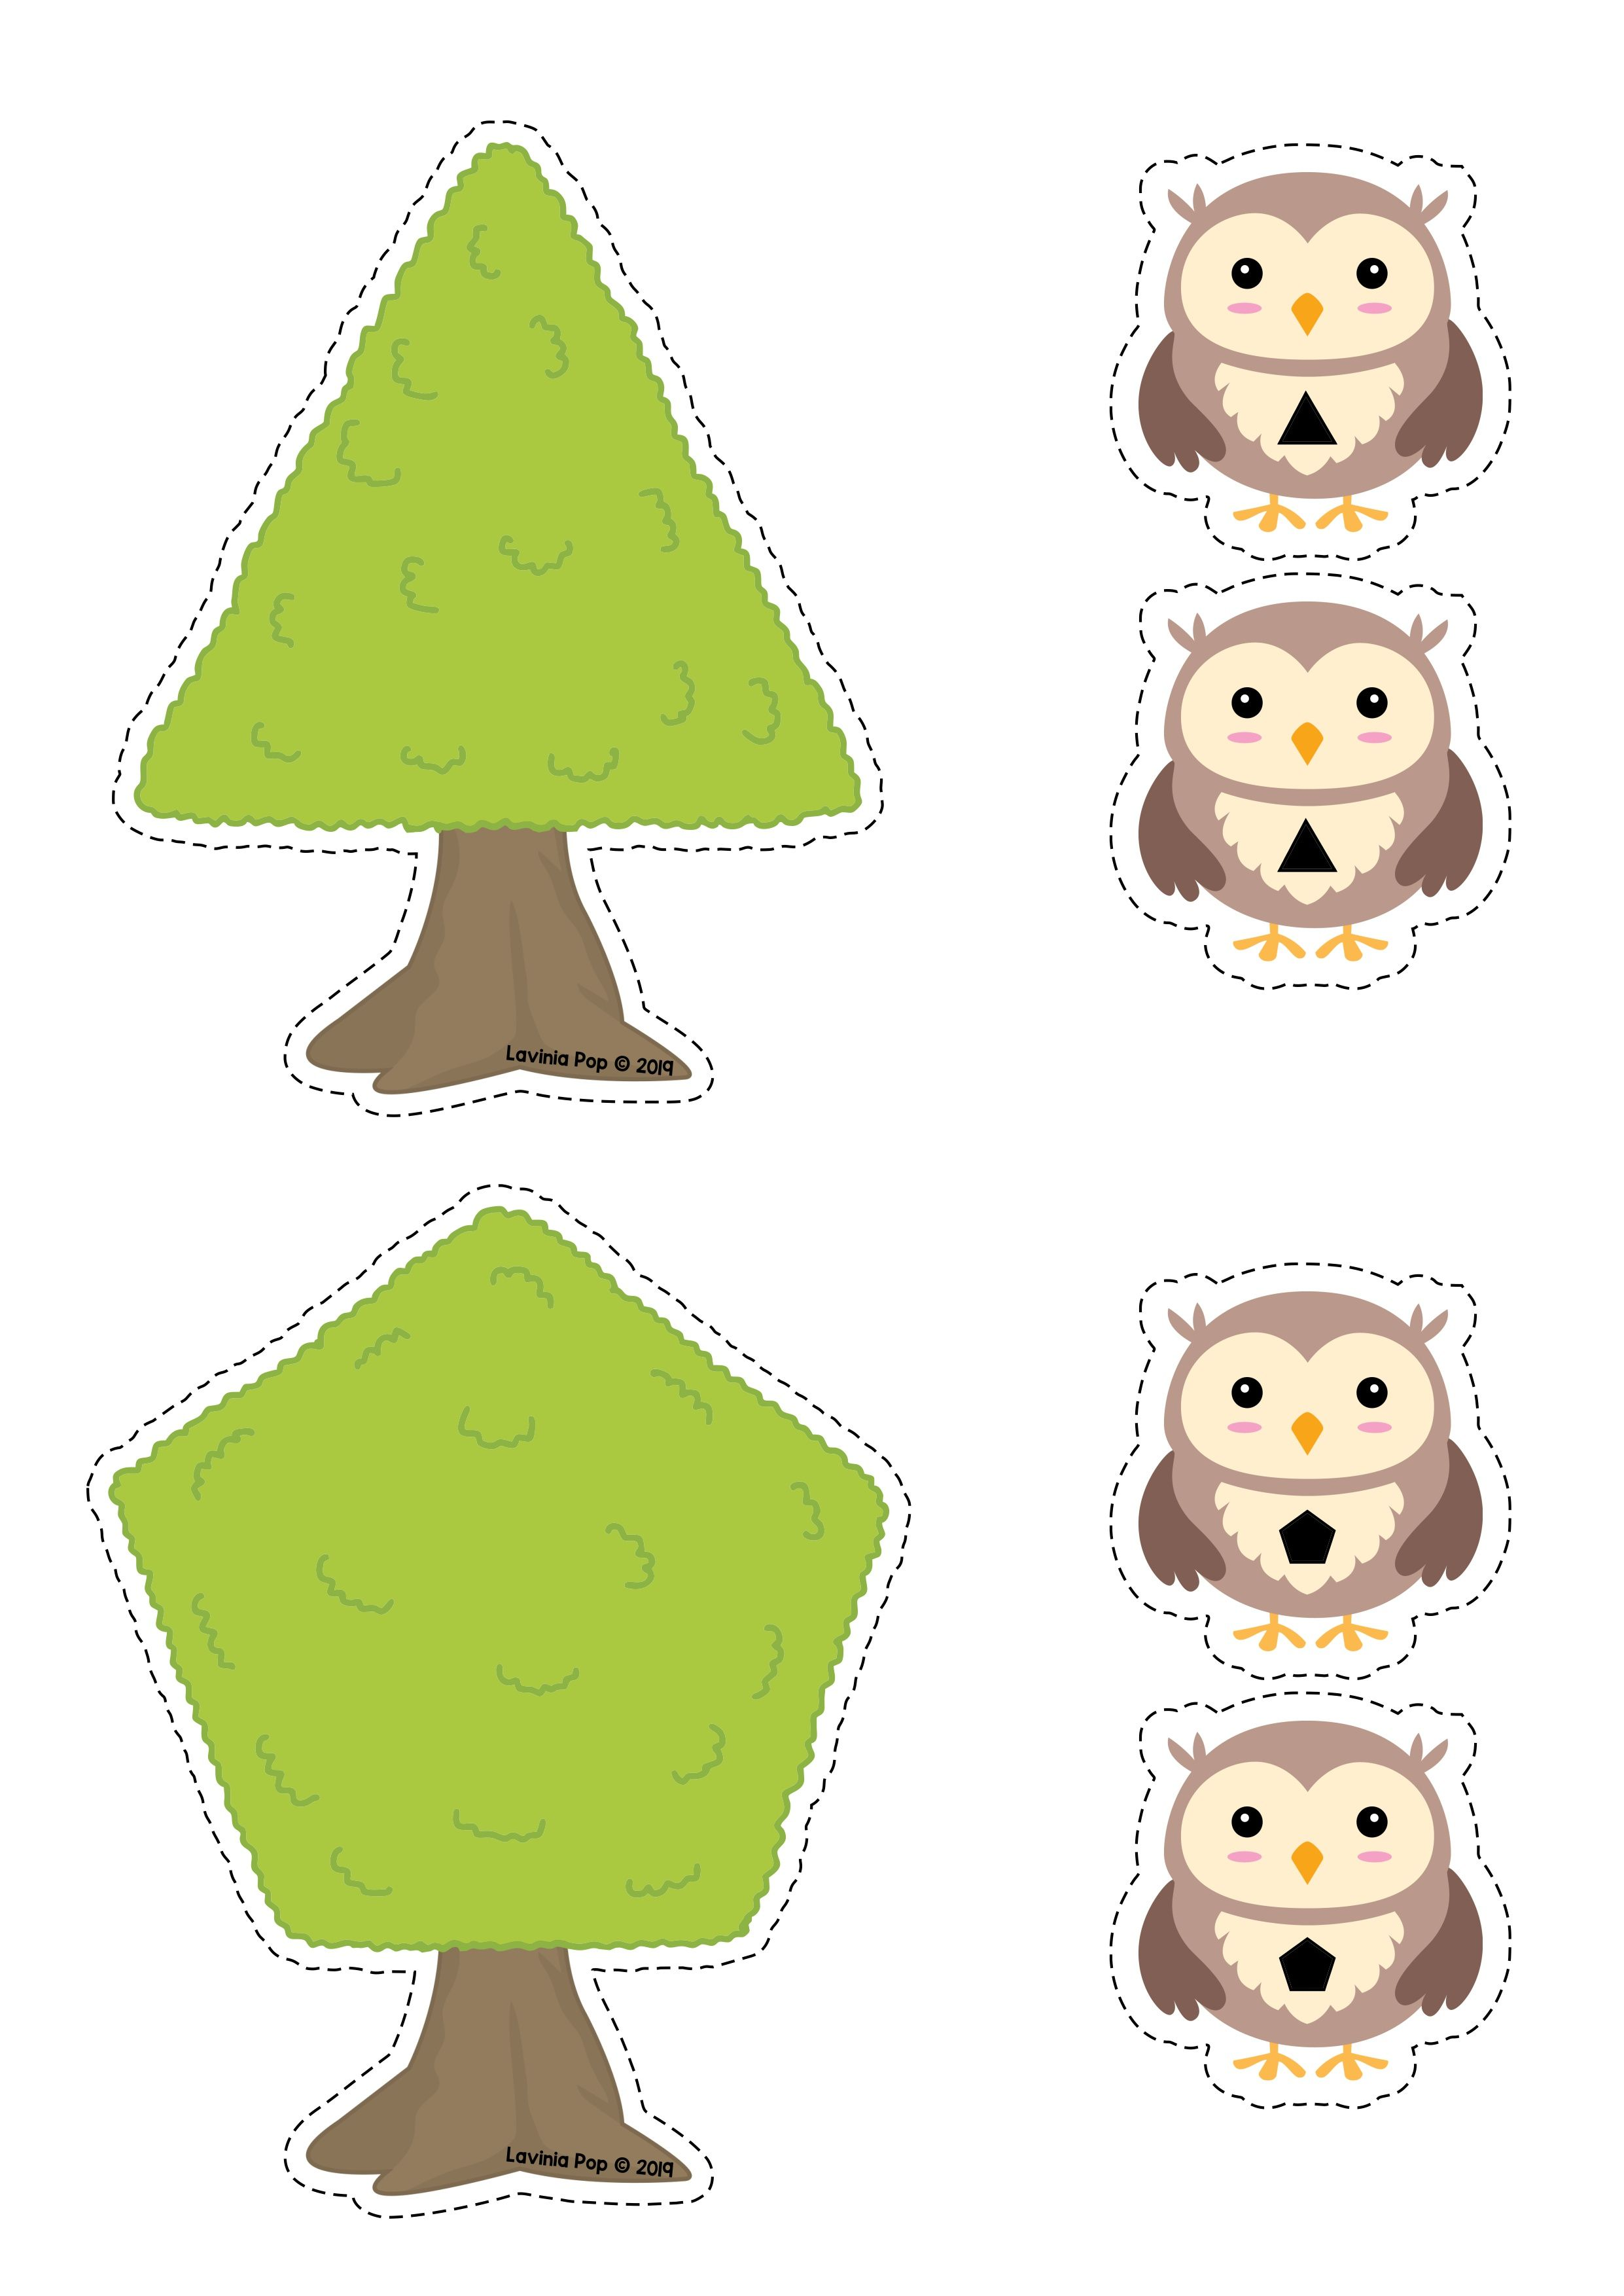 Camping Preschool Centers By Lavinia Pop Owl And Tree